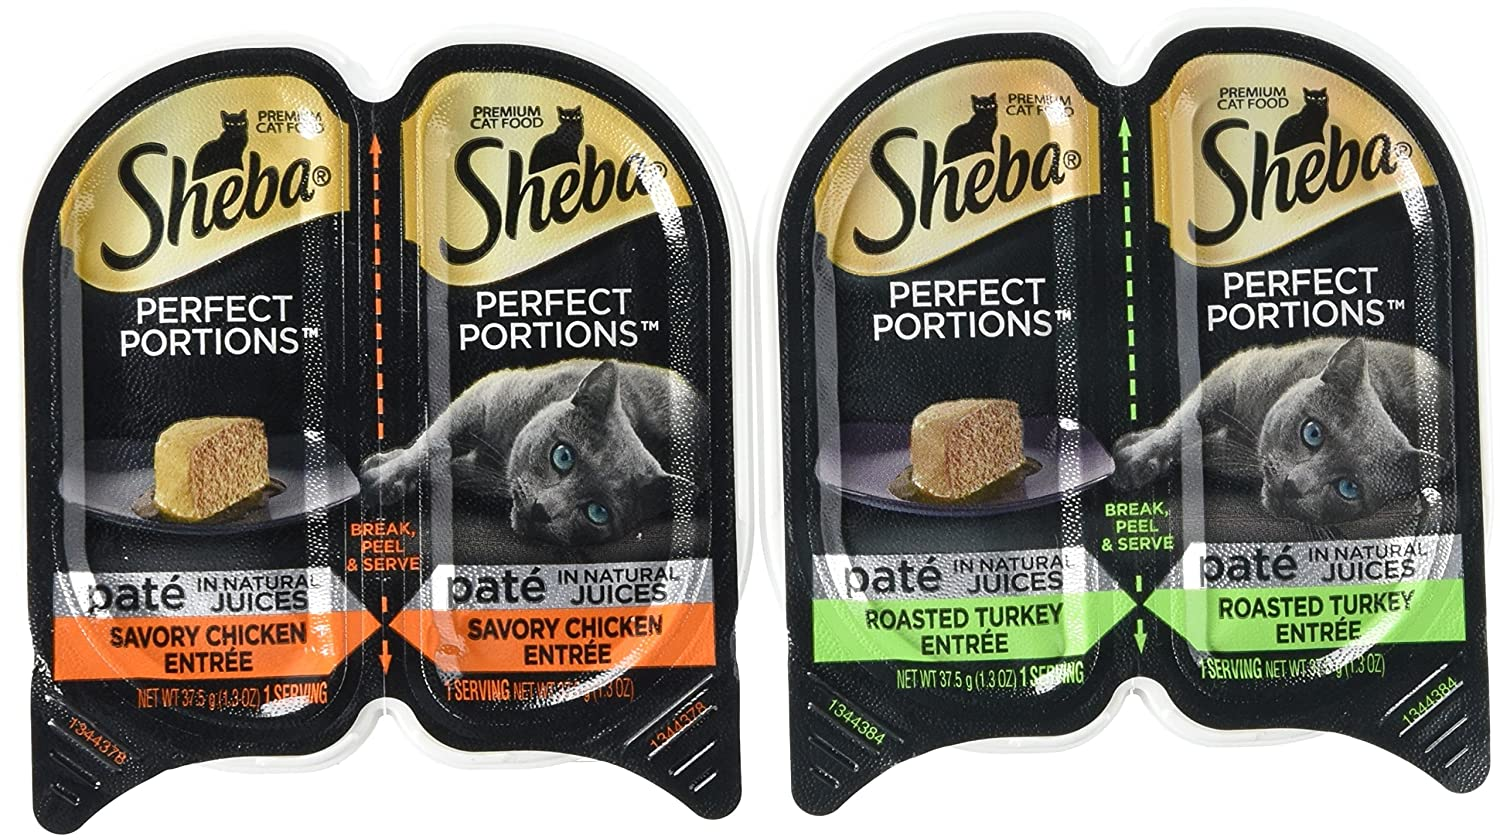 Sheba Perfect Portions Wet Cat Food, Savory Chicken Entrée and Roasted Turkey Entrée, (12) 2.6 Oz Twin-Pack Trays